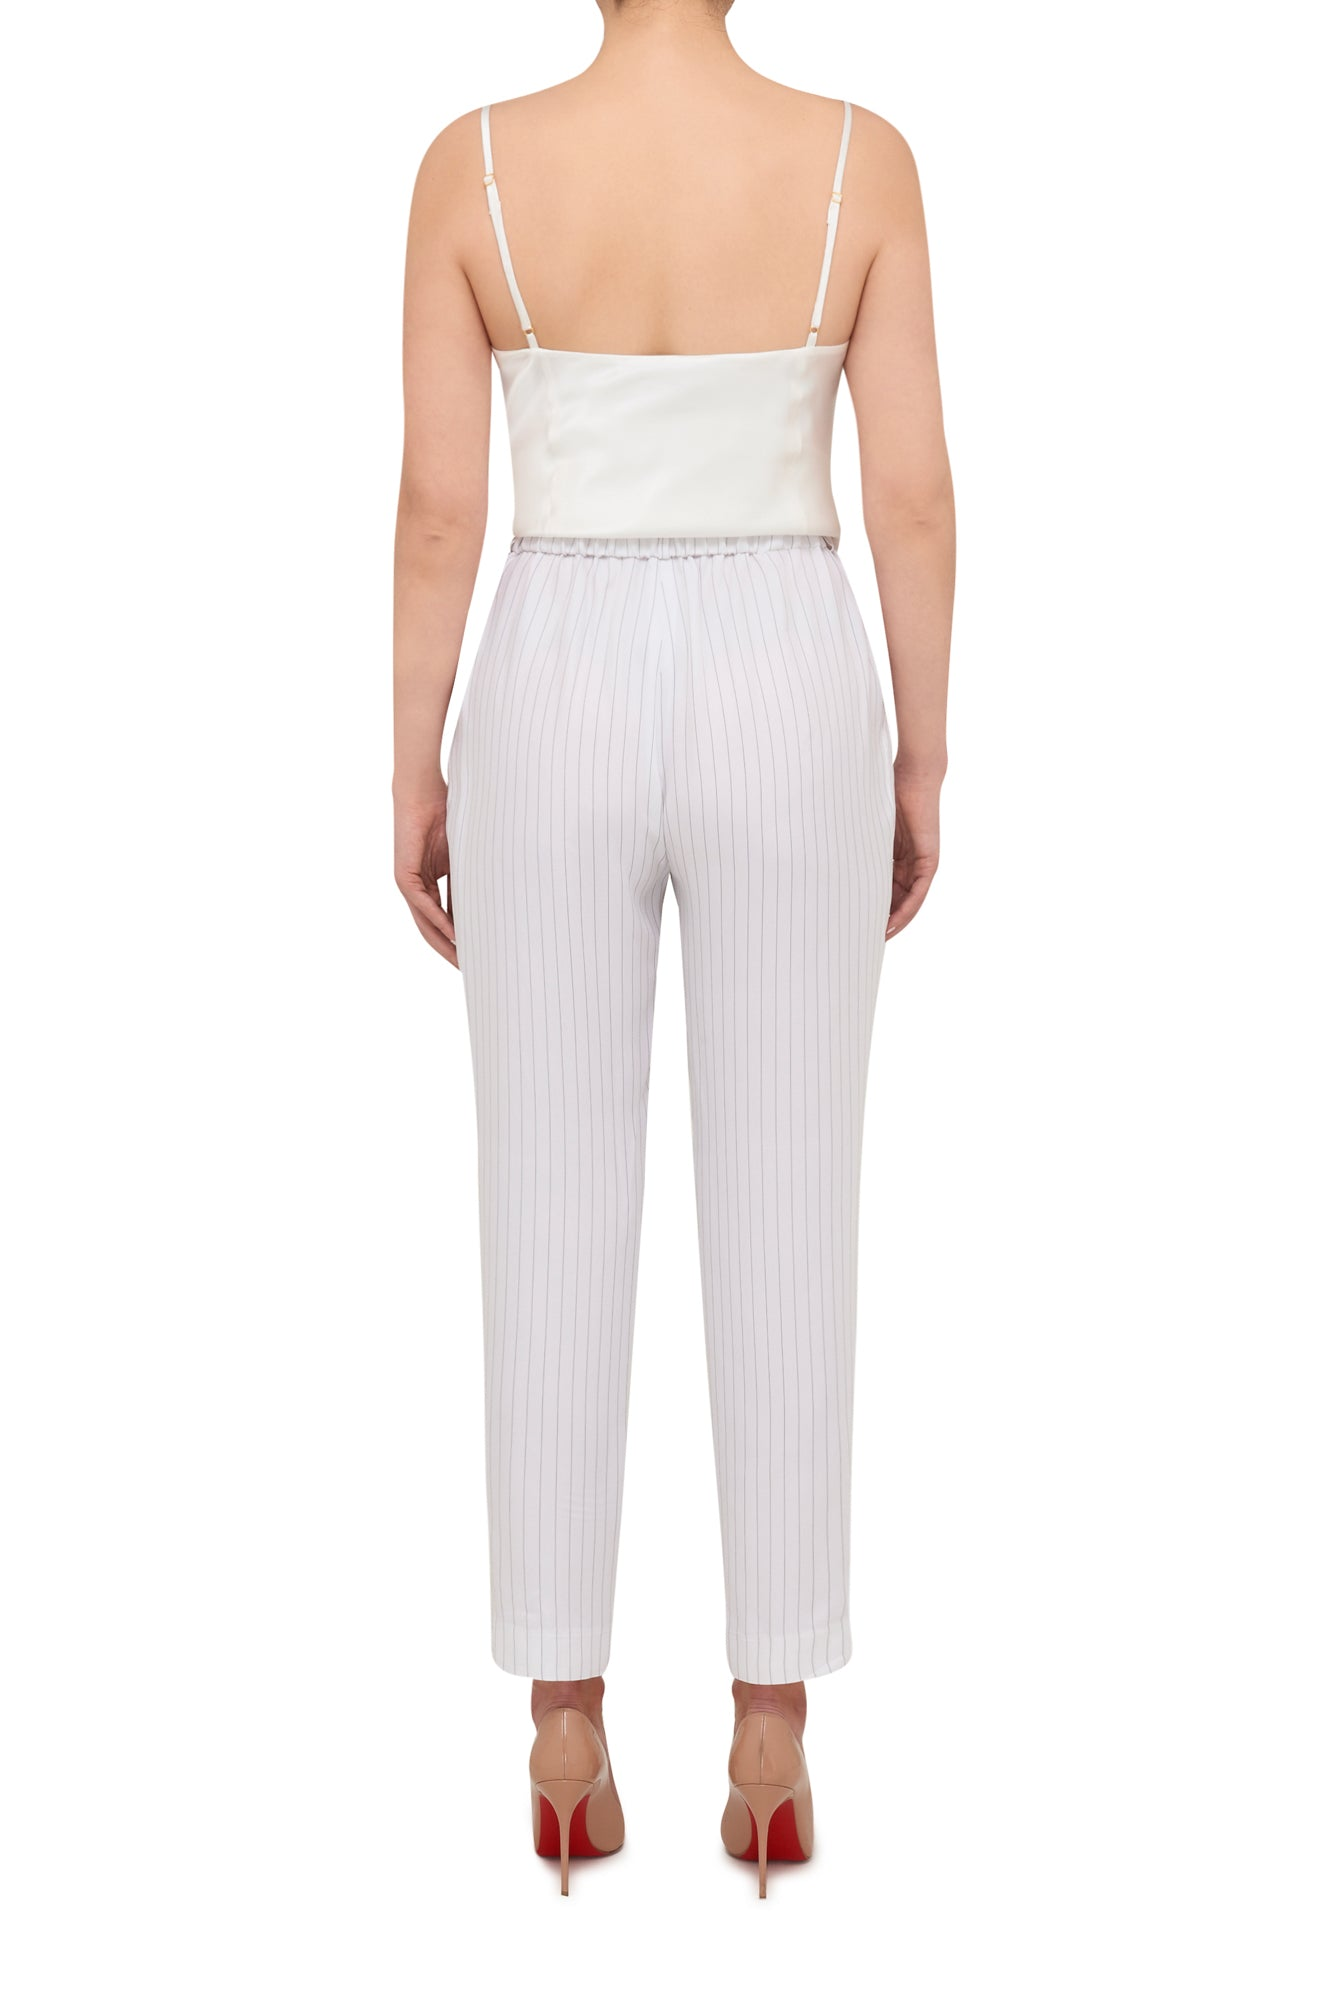 Suit Up Pinstripe Pant - White